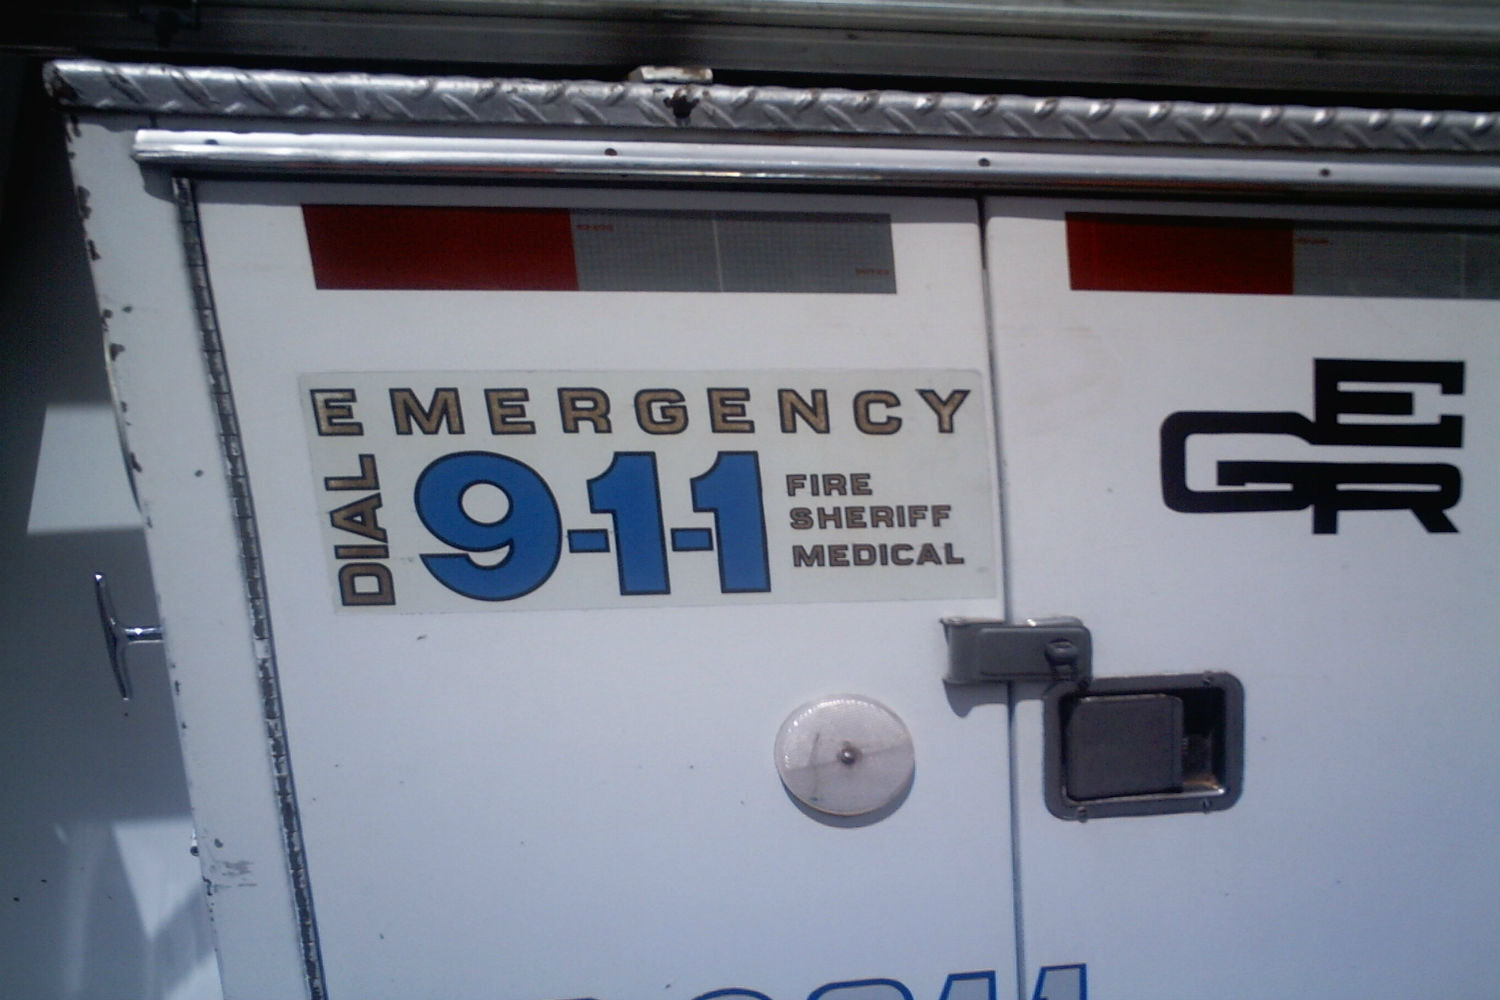 Emergency 911 sign GuardianMPS Celling yourself short blog header image_large